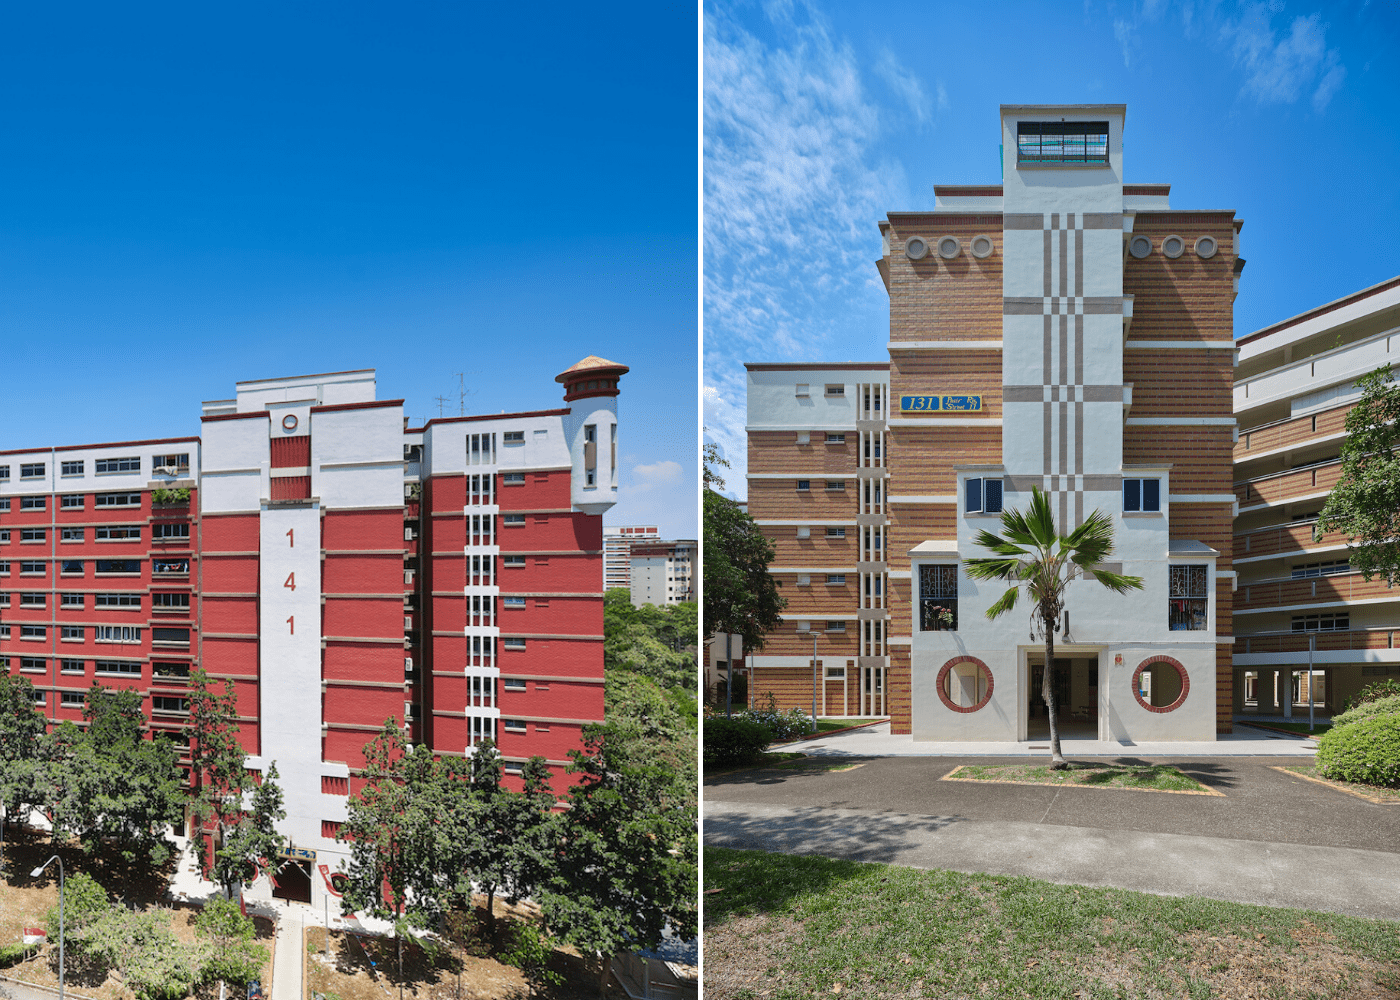 Maritme themed HDB flats in Singapore | Blocks 141 and 130, Pasir Ris Street 11